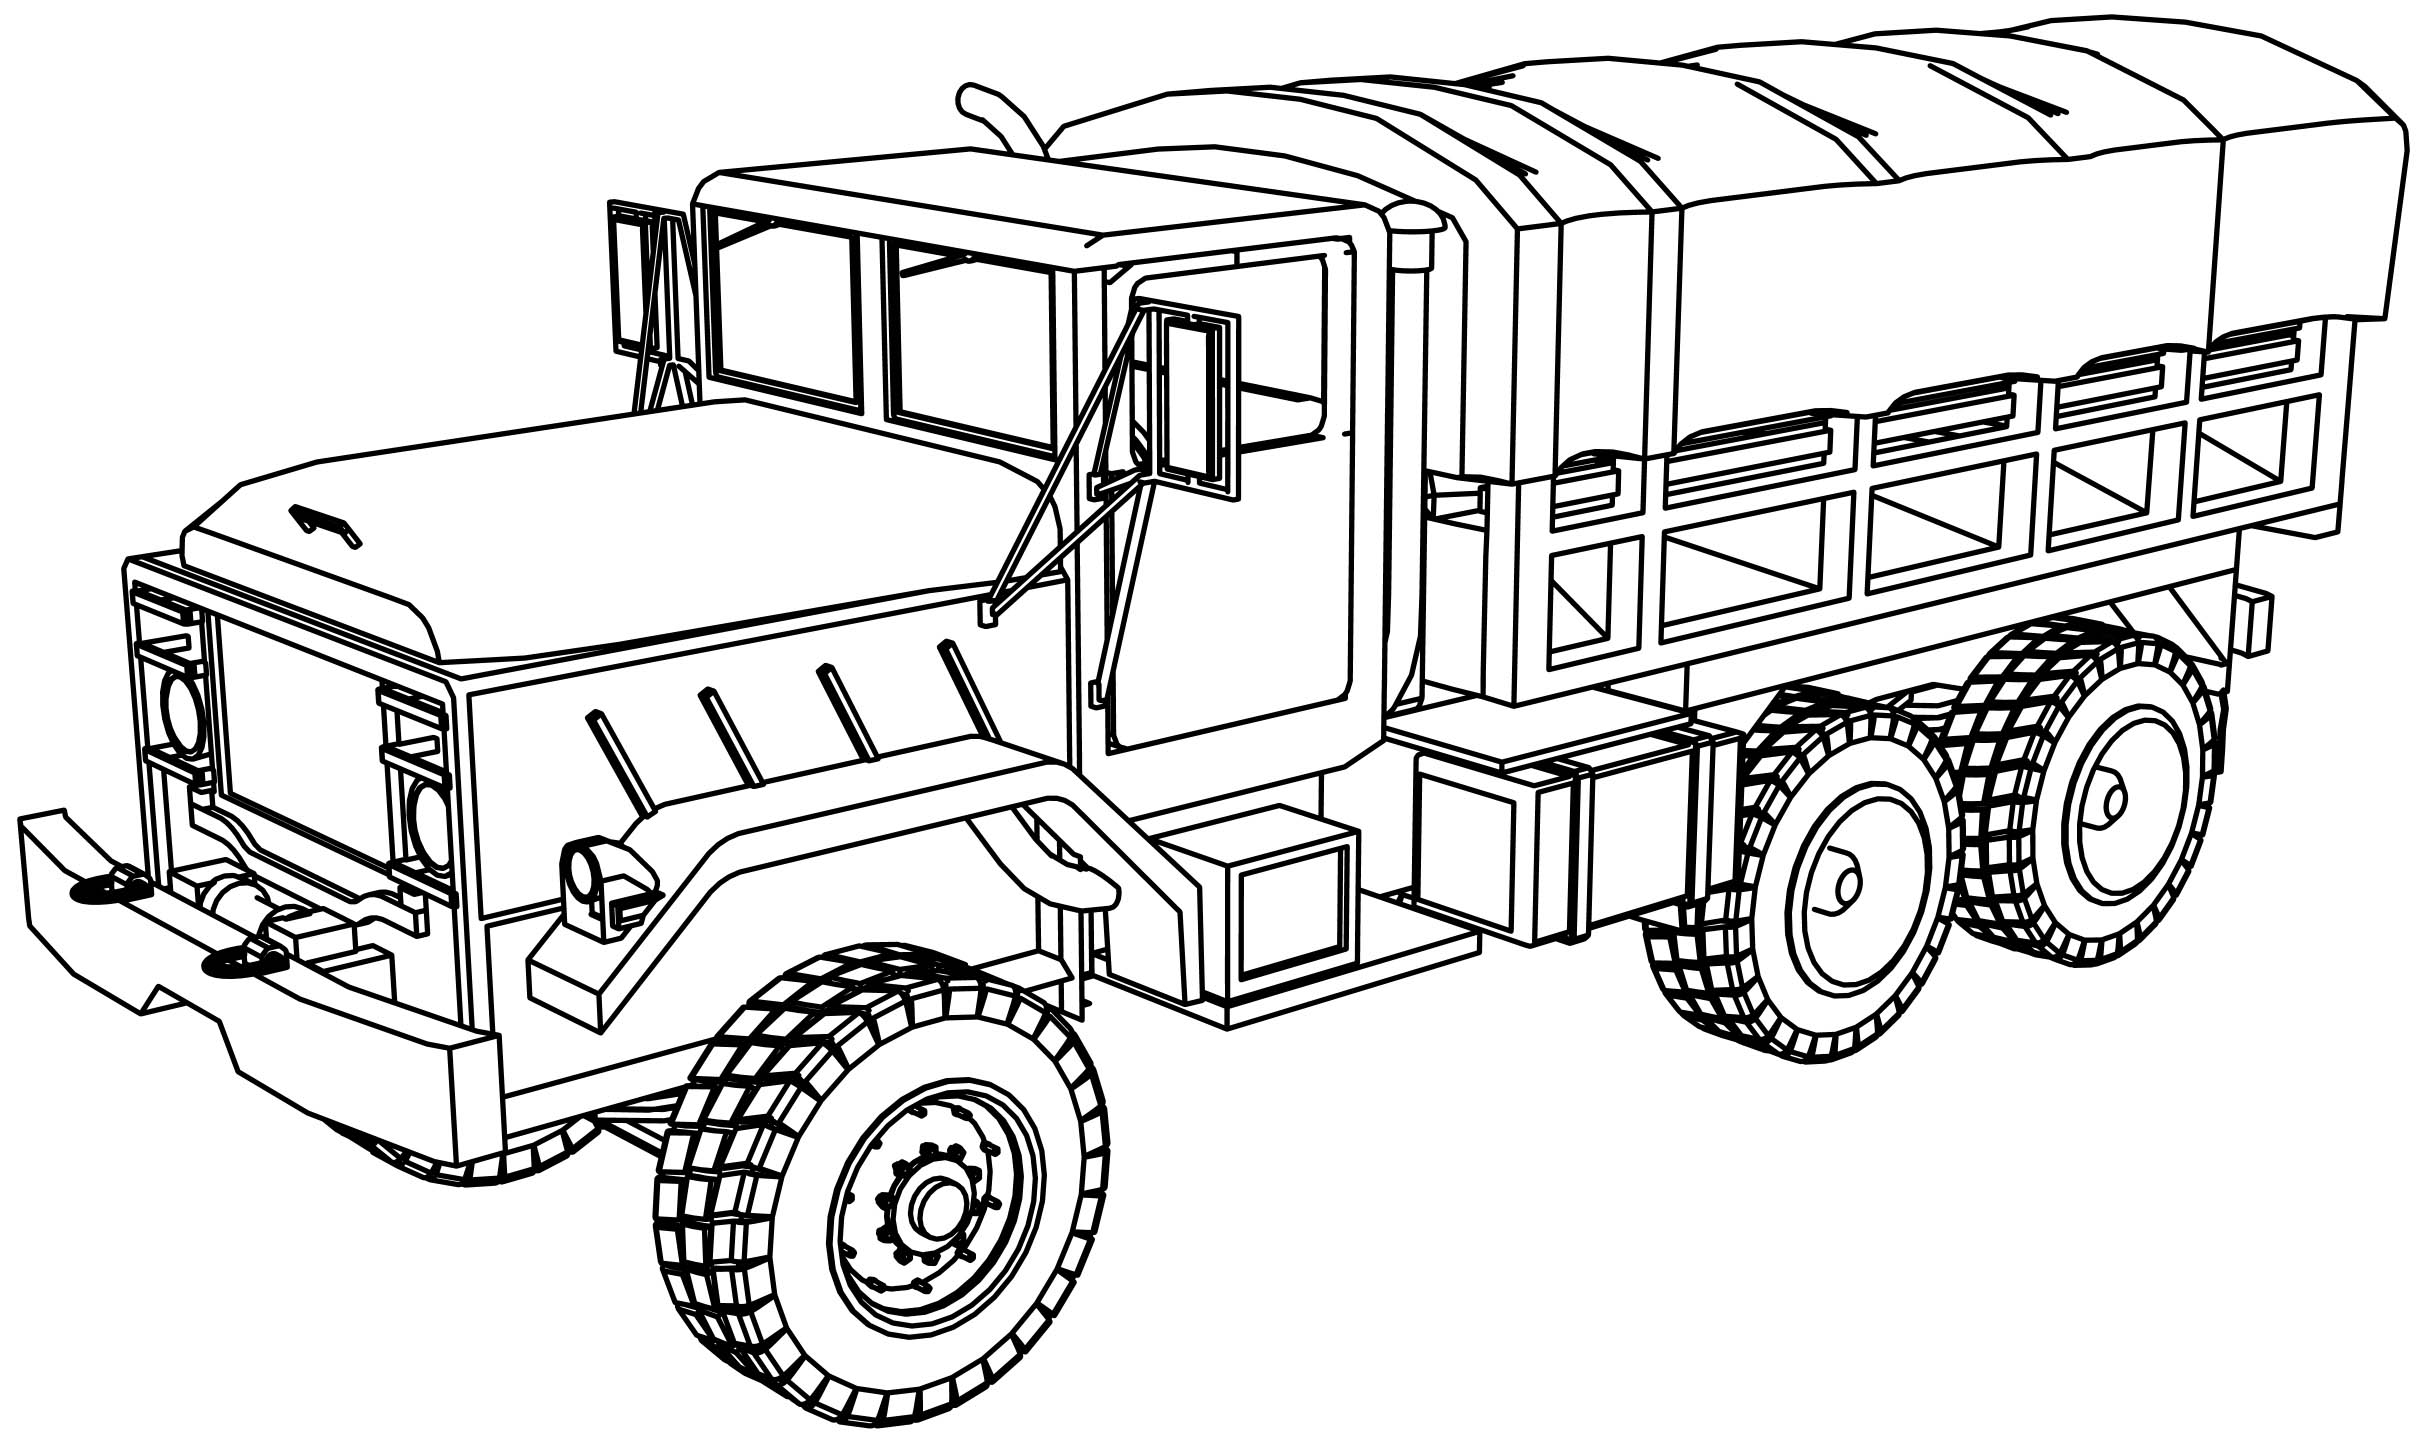 Suspension furthermore M923 Military Truck Coloring Page additionally 1950 Chevrolet Wiring Diagram moreover Page 2 together with Mazda B 2500. on gmc trucks